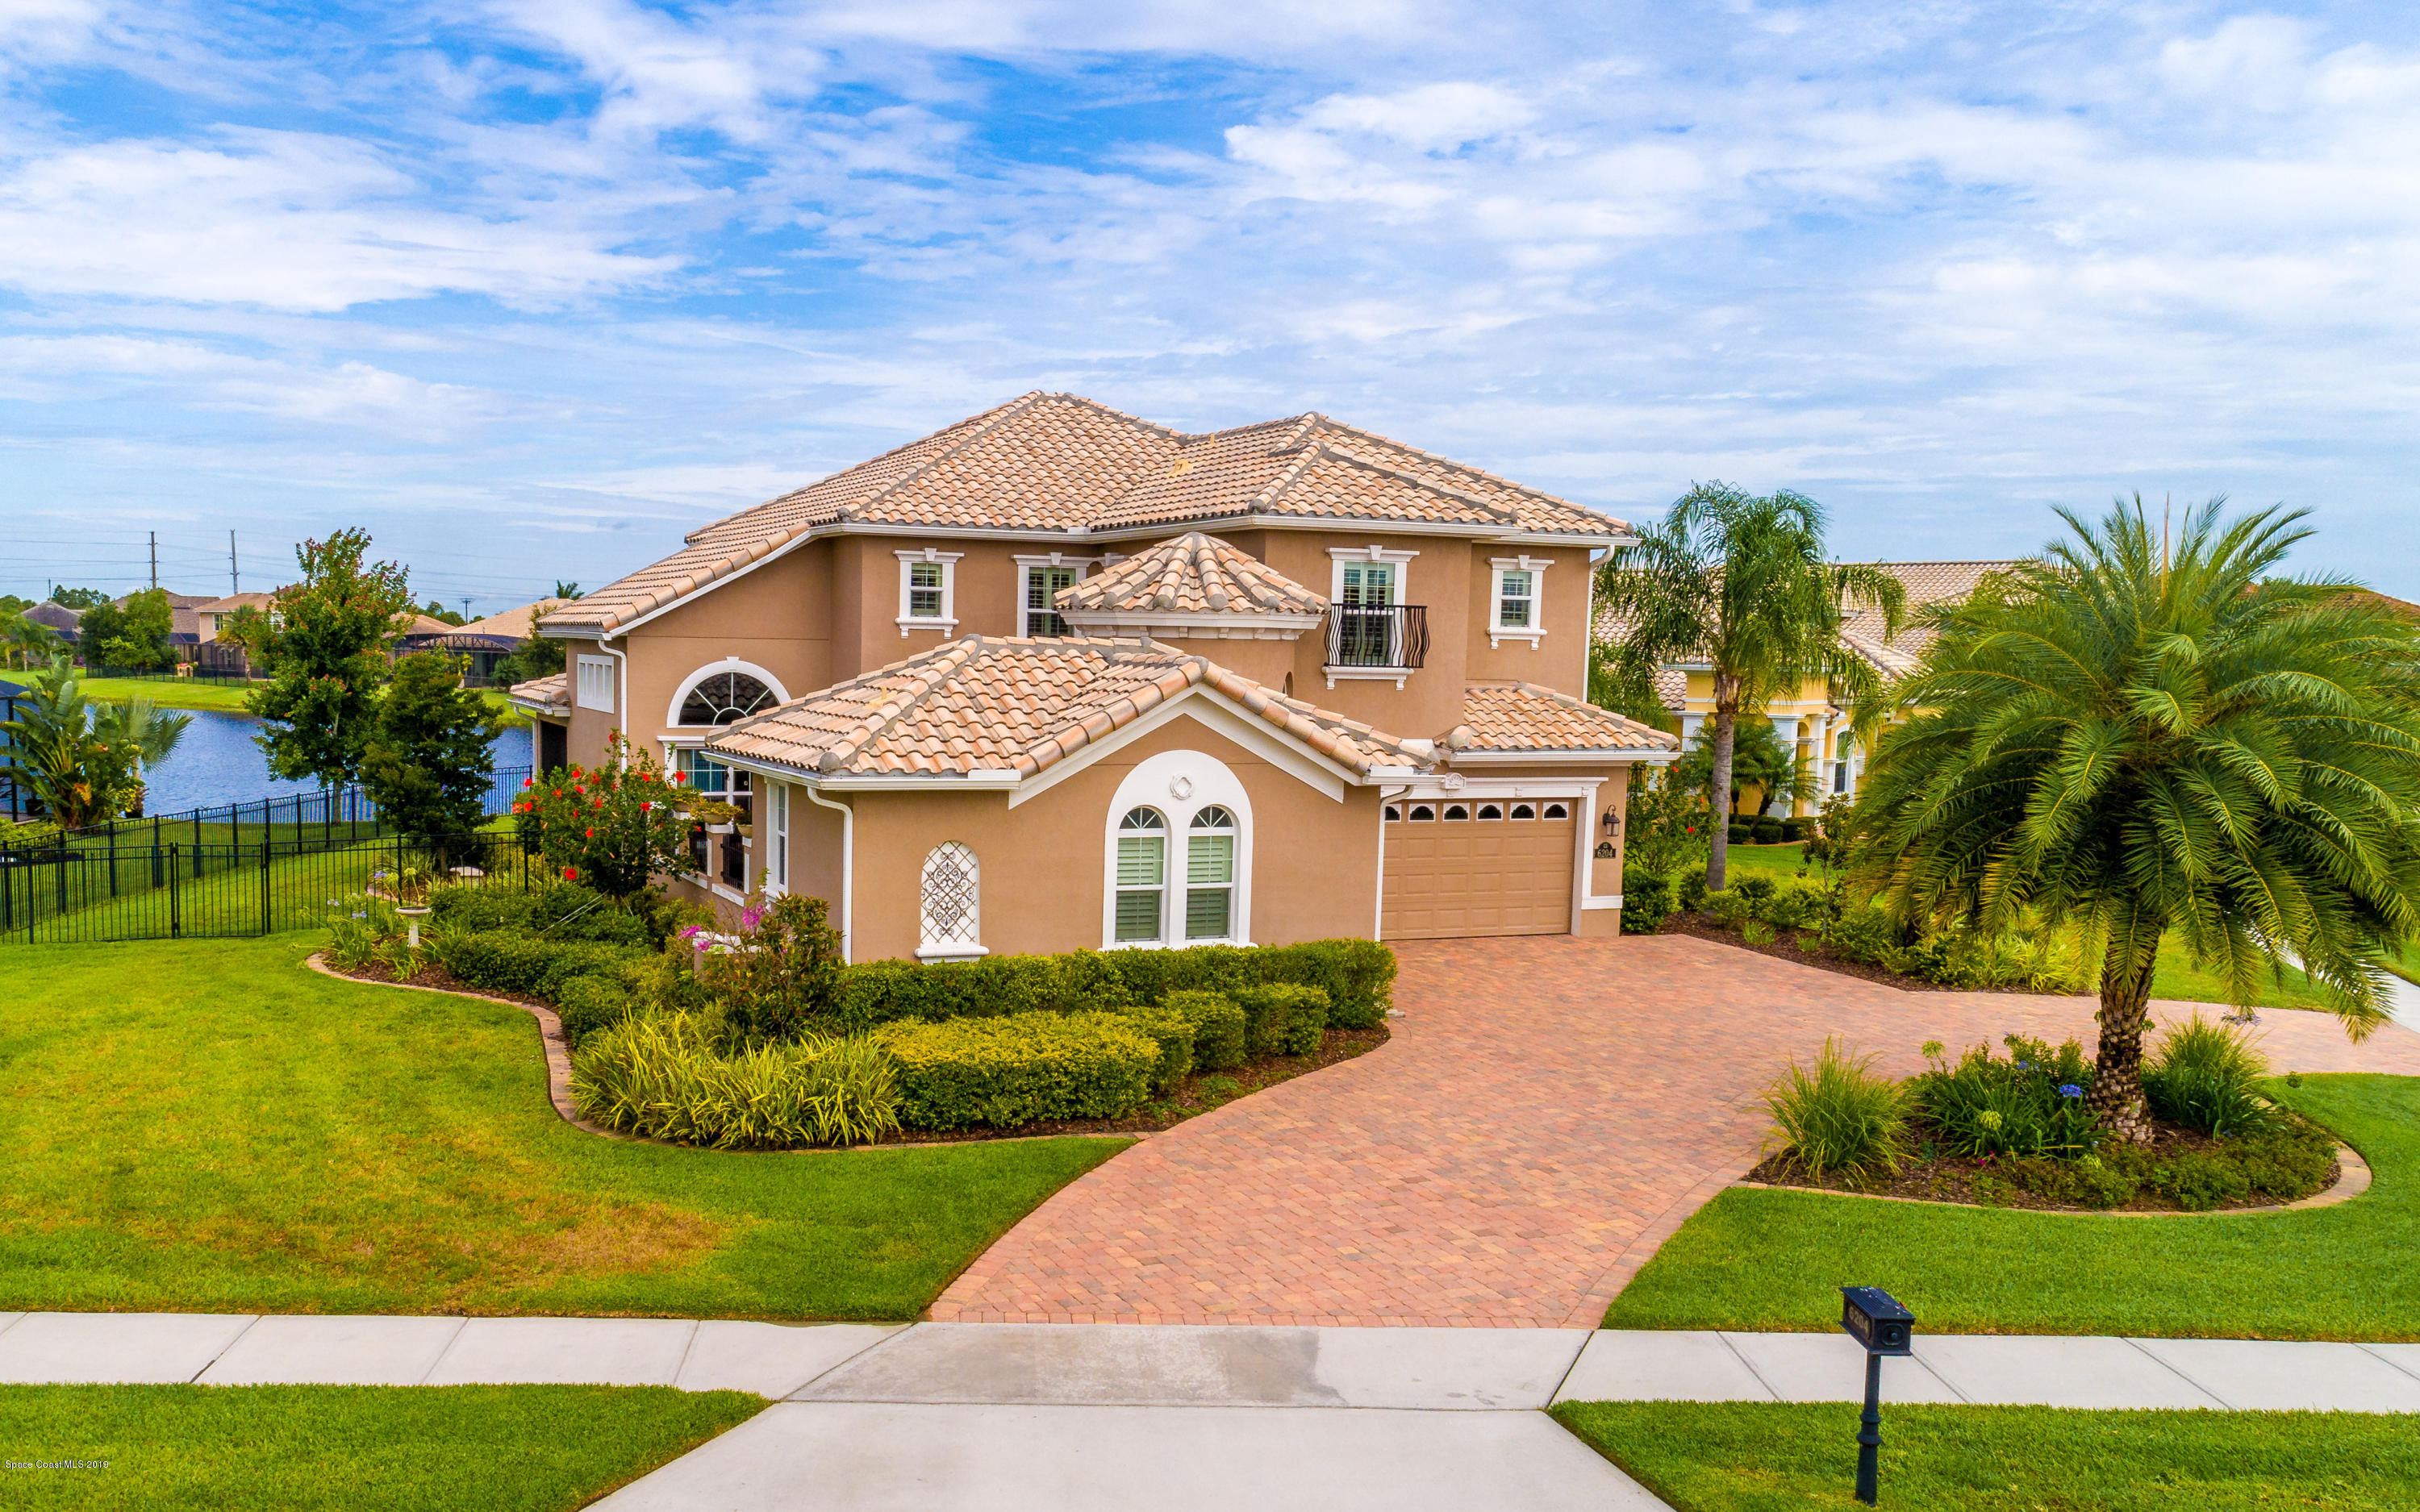 Single Family Homes for Sale at 6204 Mechlin Melbourne, Florida 32940 United States